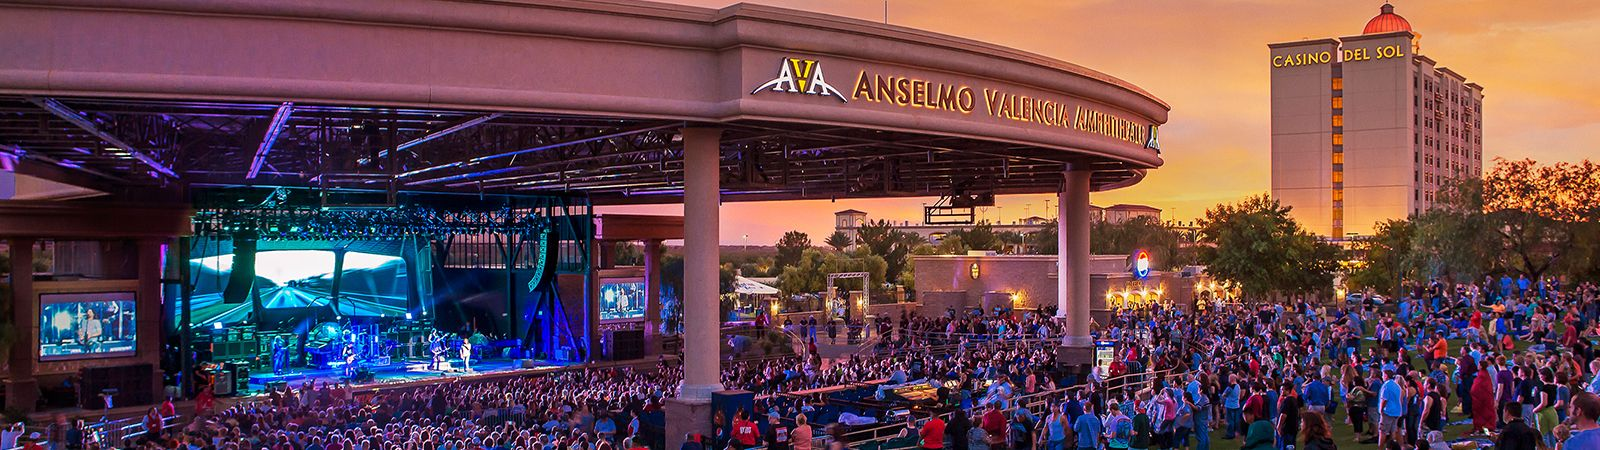 Concerts at AVA Amphitheater Casino Del Sol